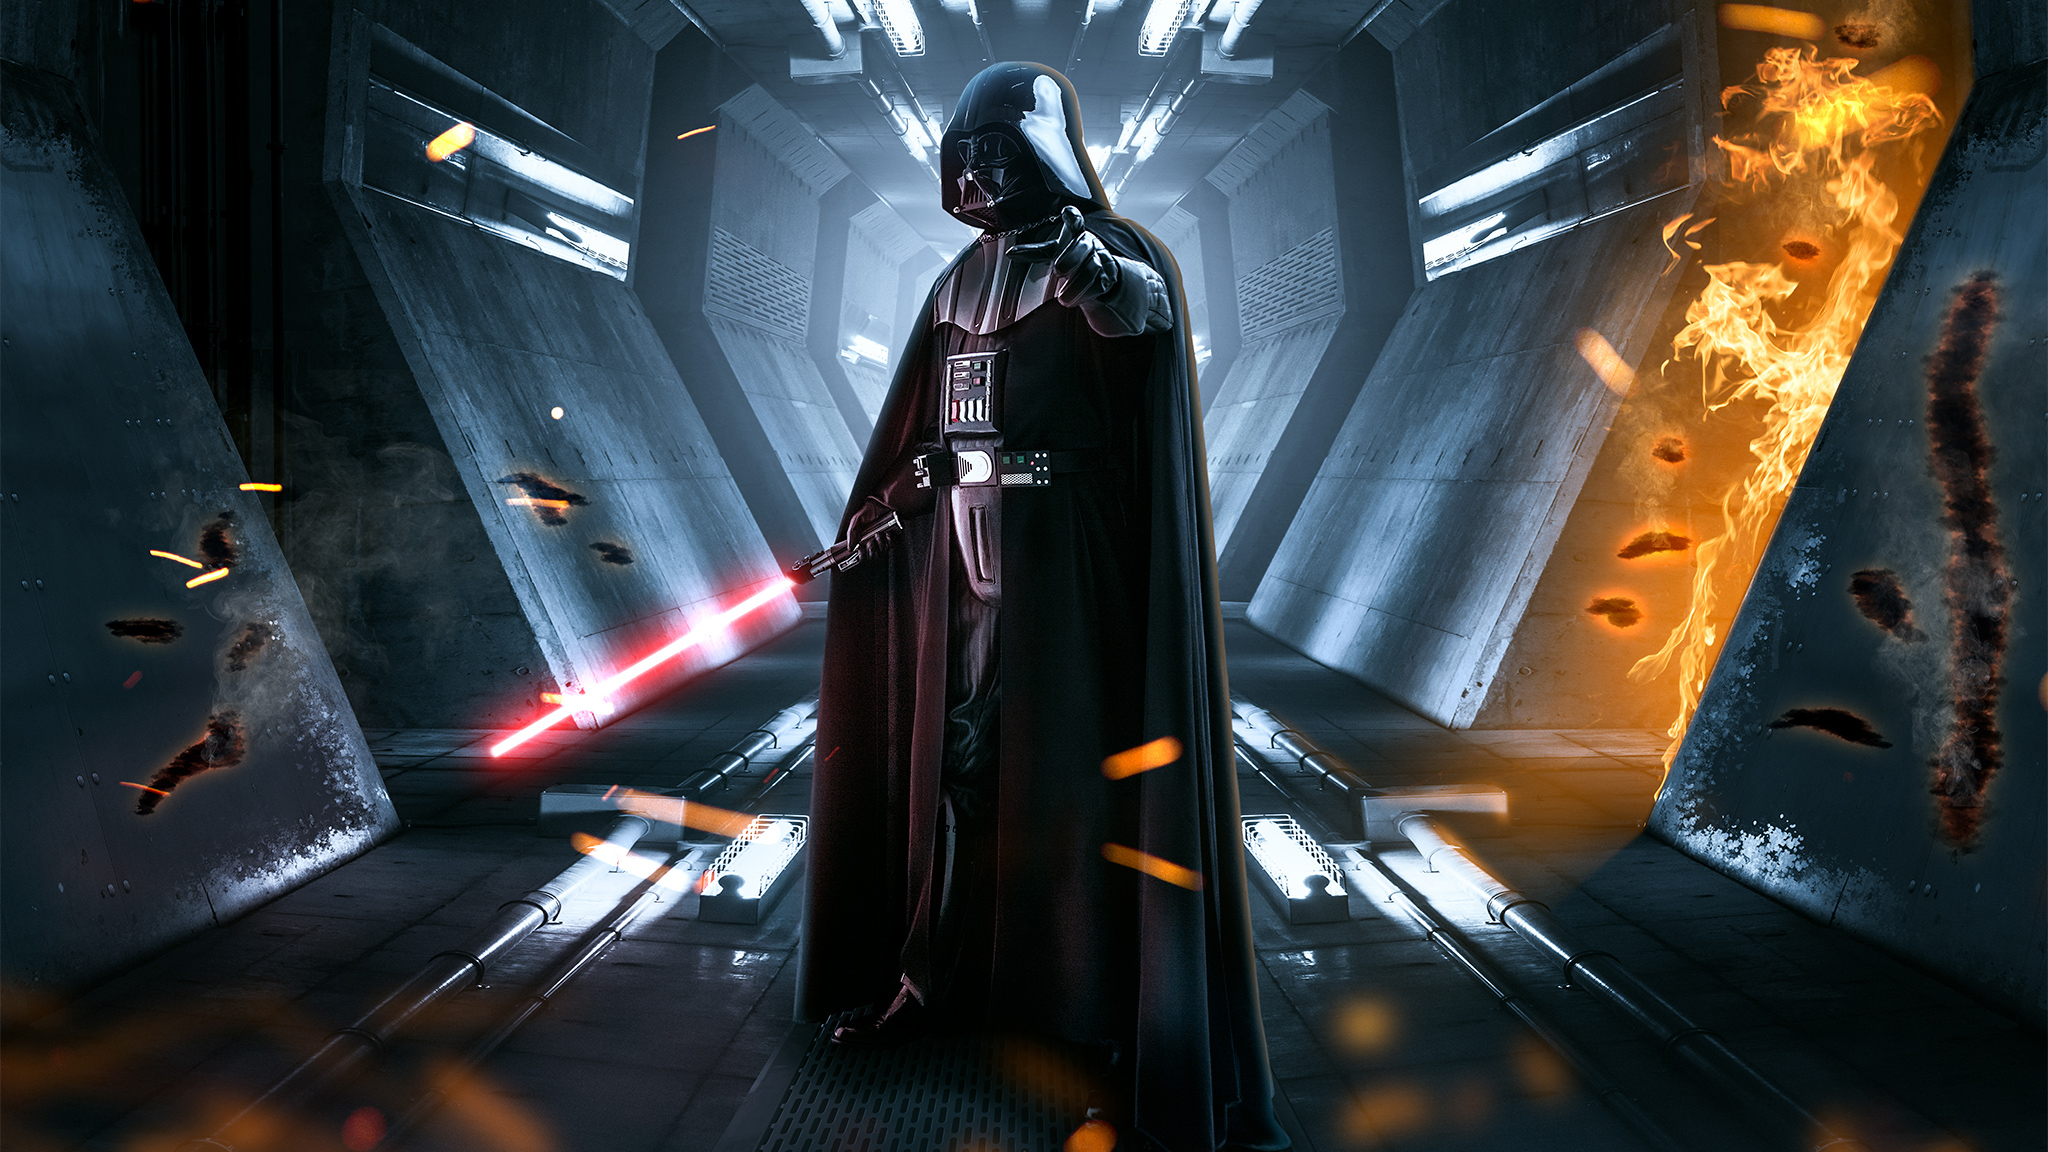 New Darth Vader Hd Movies 4k Wallpapers Images Backgrounds Photos And Pictures